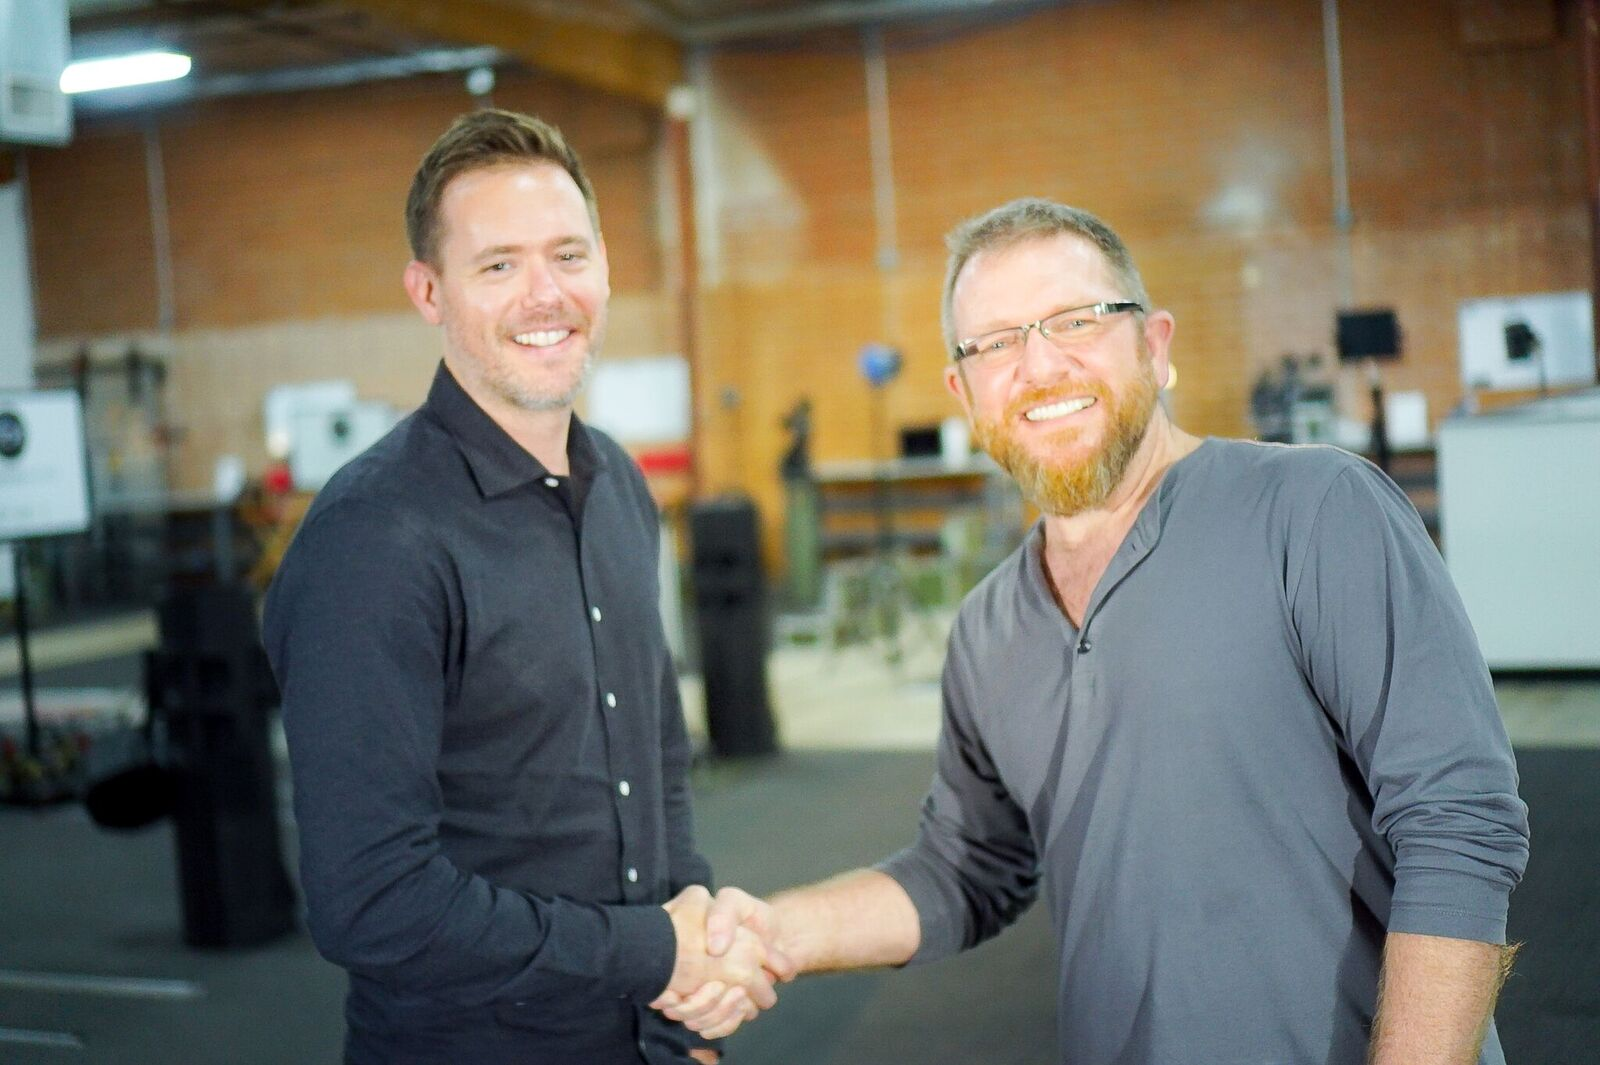 The Camera Division owners shaking hands